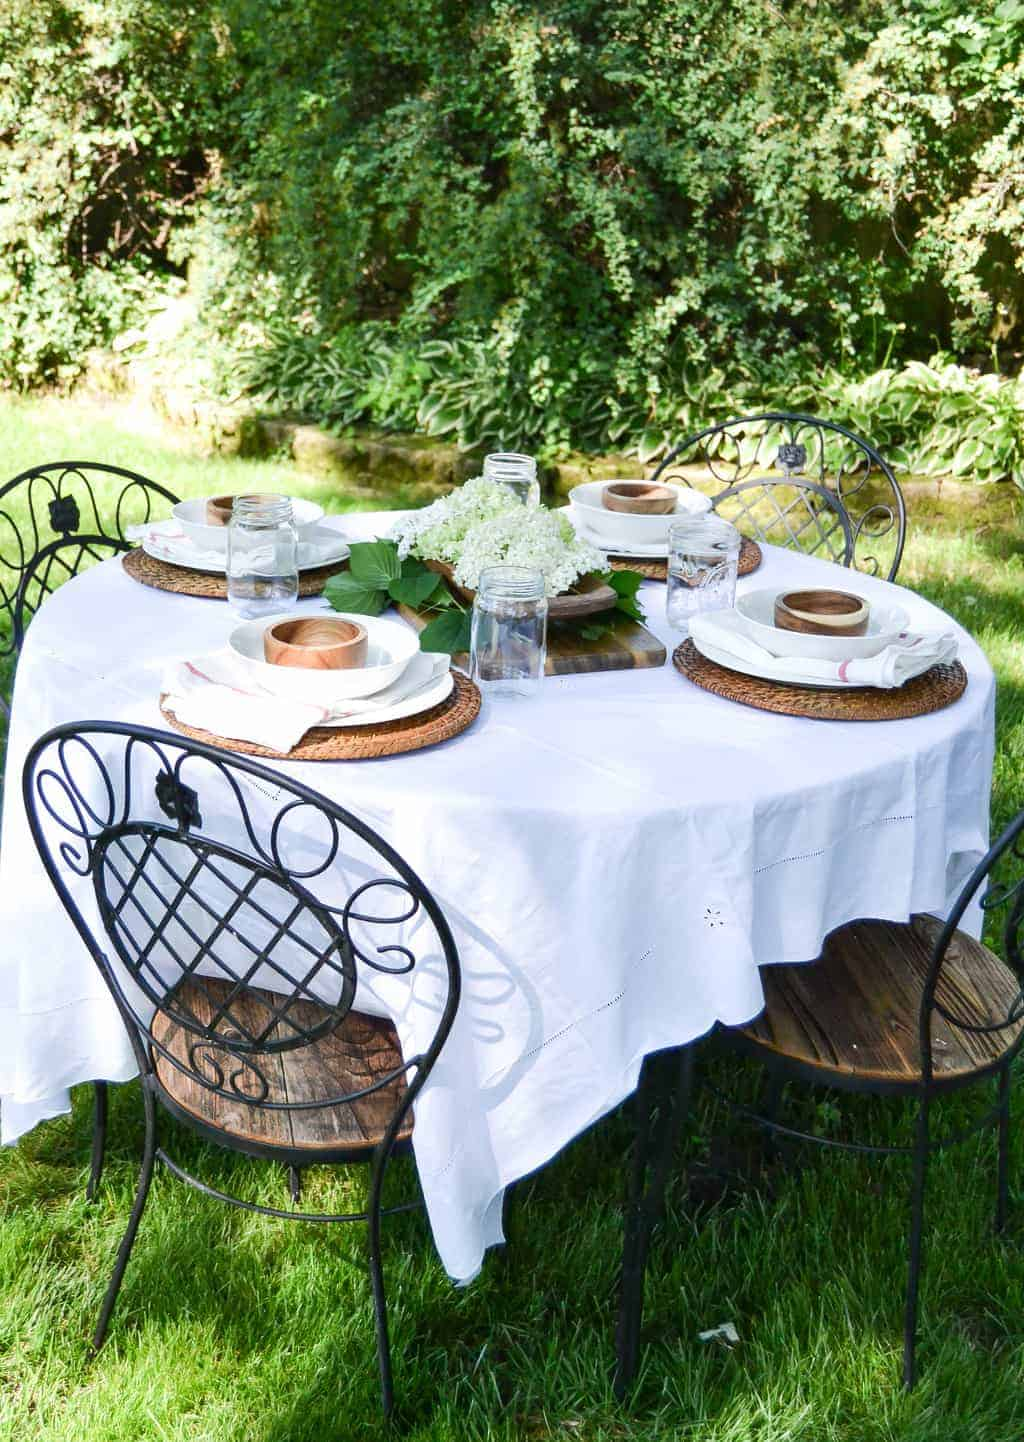 Ikea Wood Cutting Board Summer Tablescape - Making Alfresco Dining Special - My